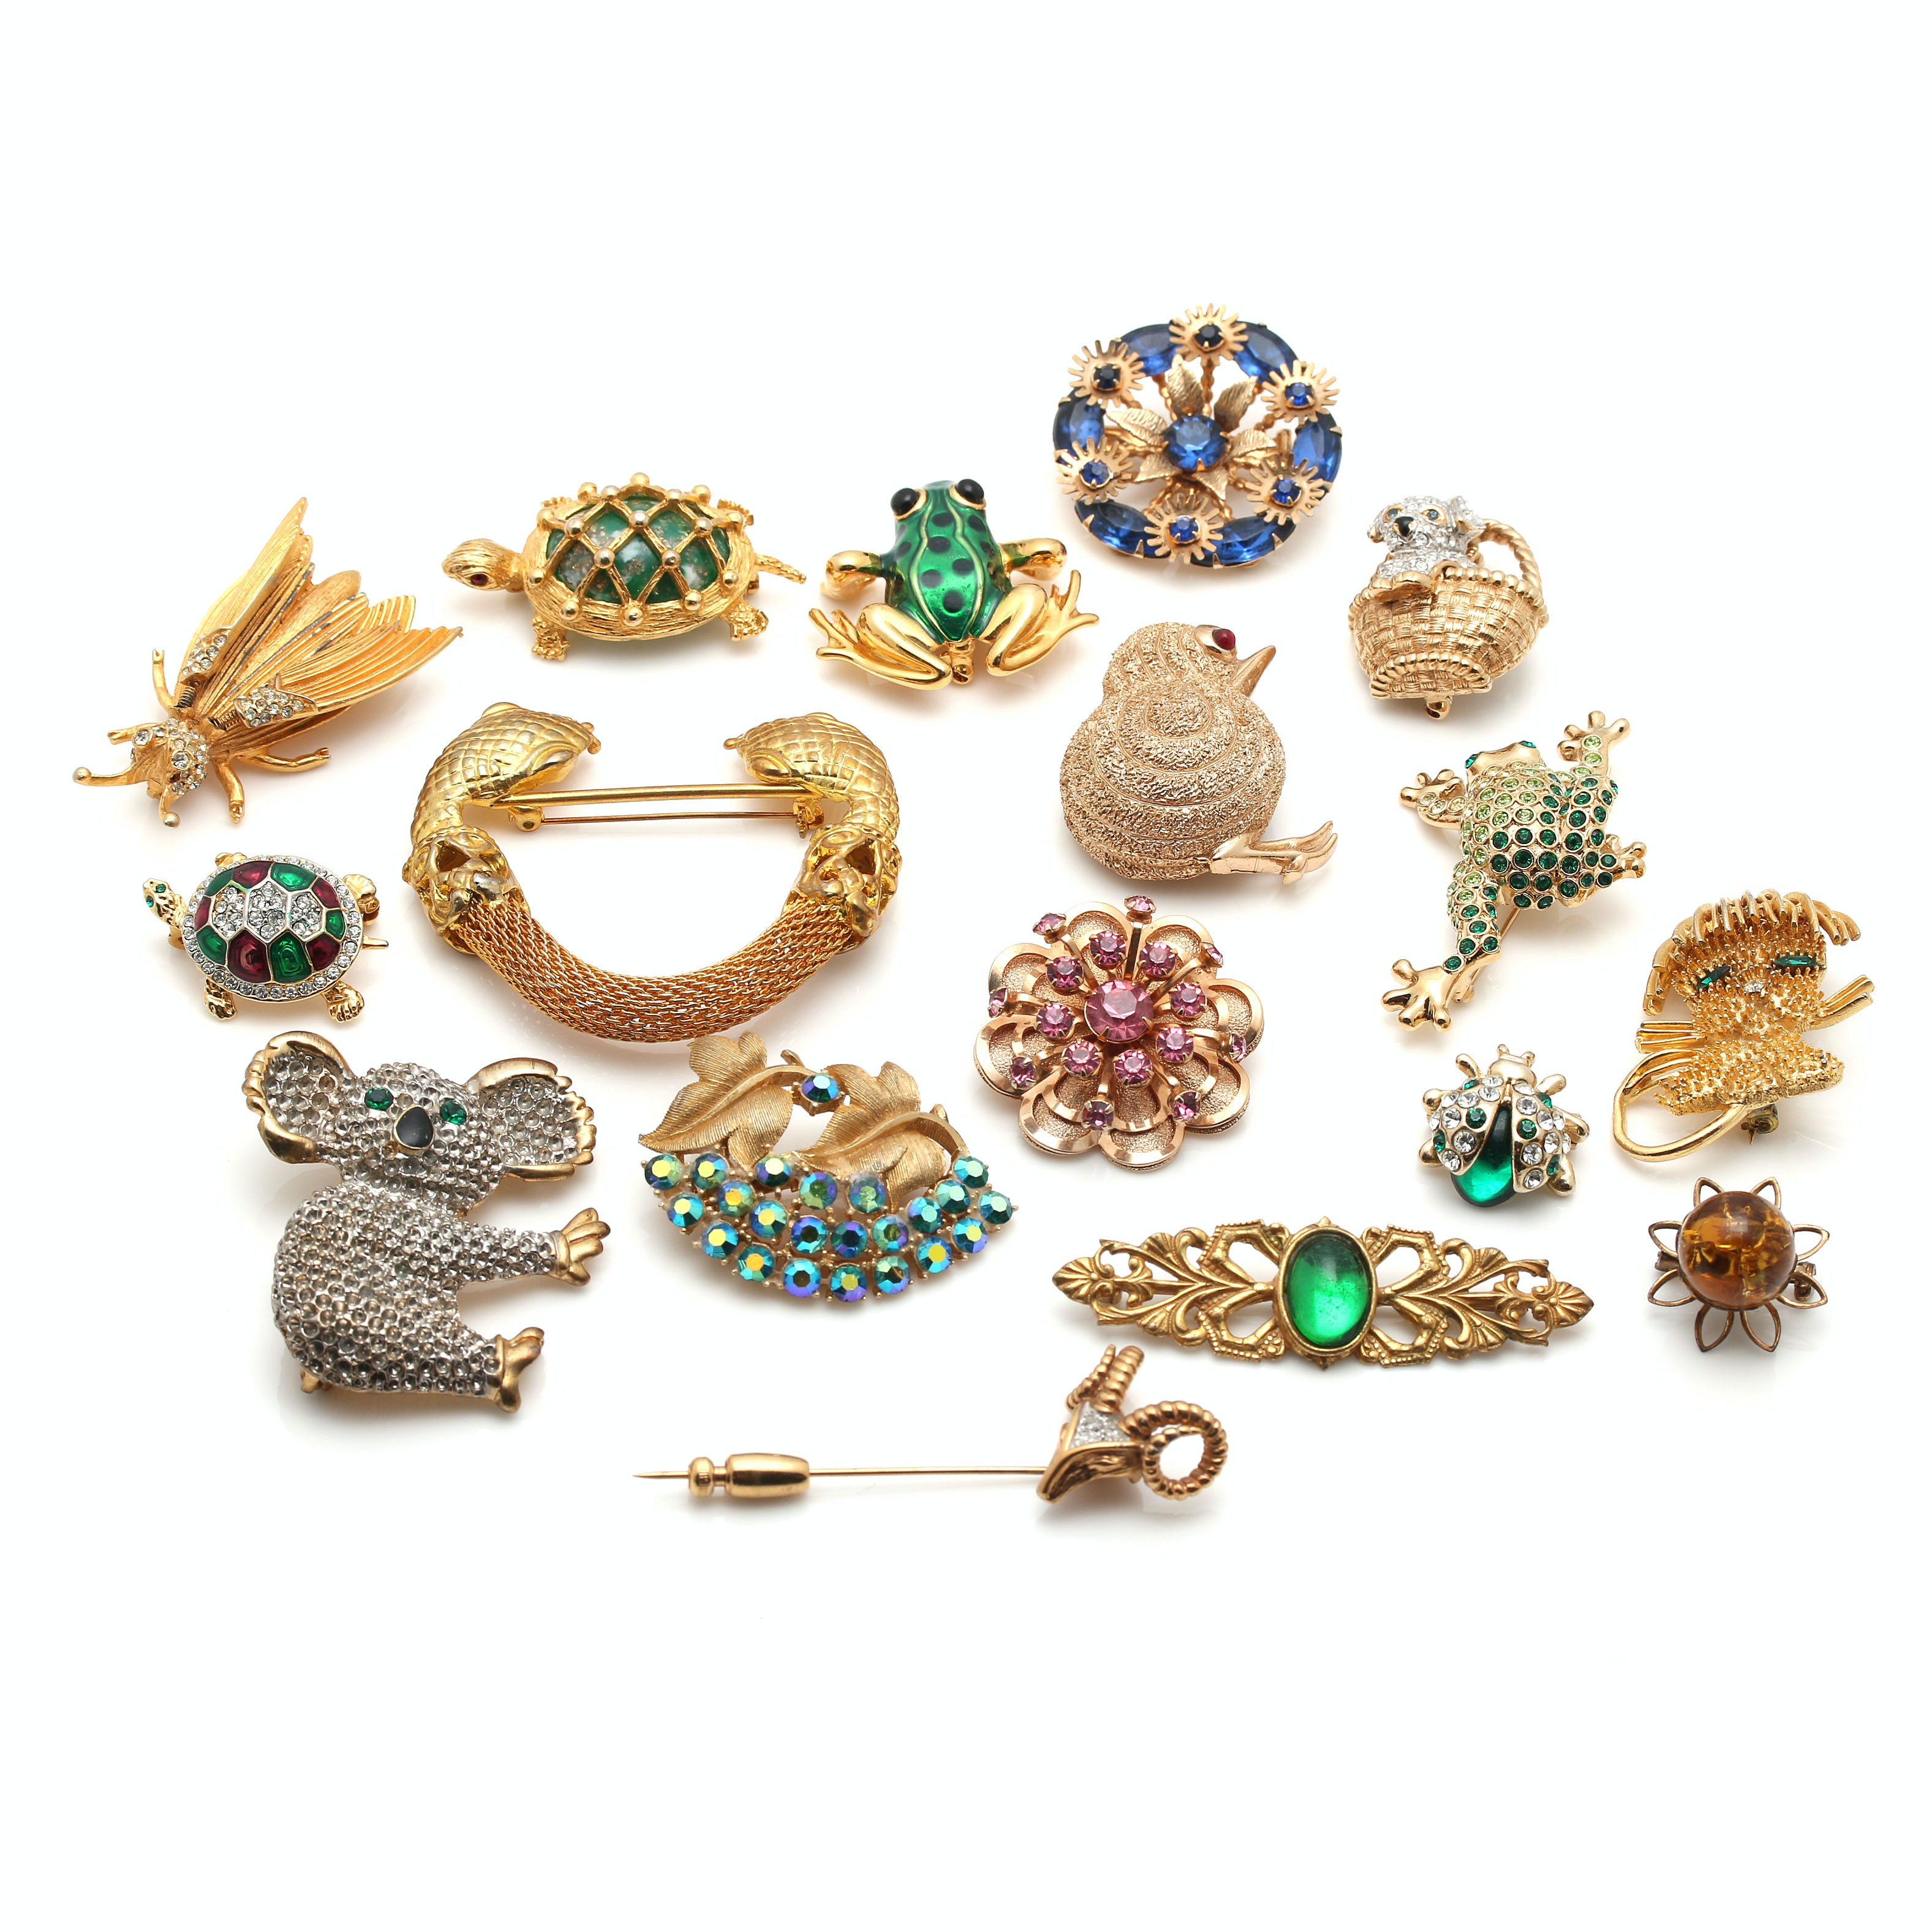 Vintage Costume Brooches and Stick Pin Featuring Miriam Haskell and Trifari